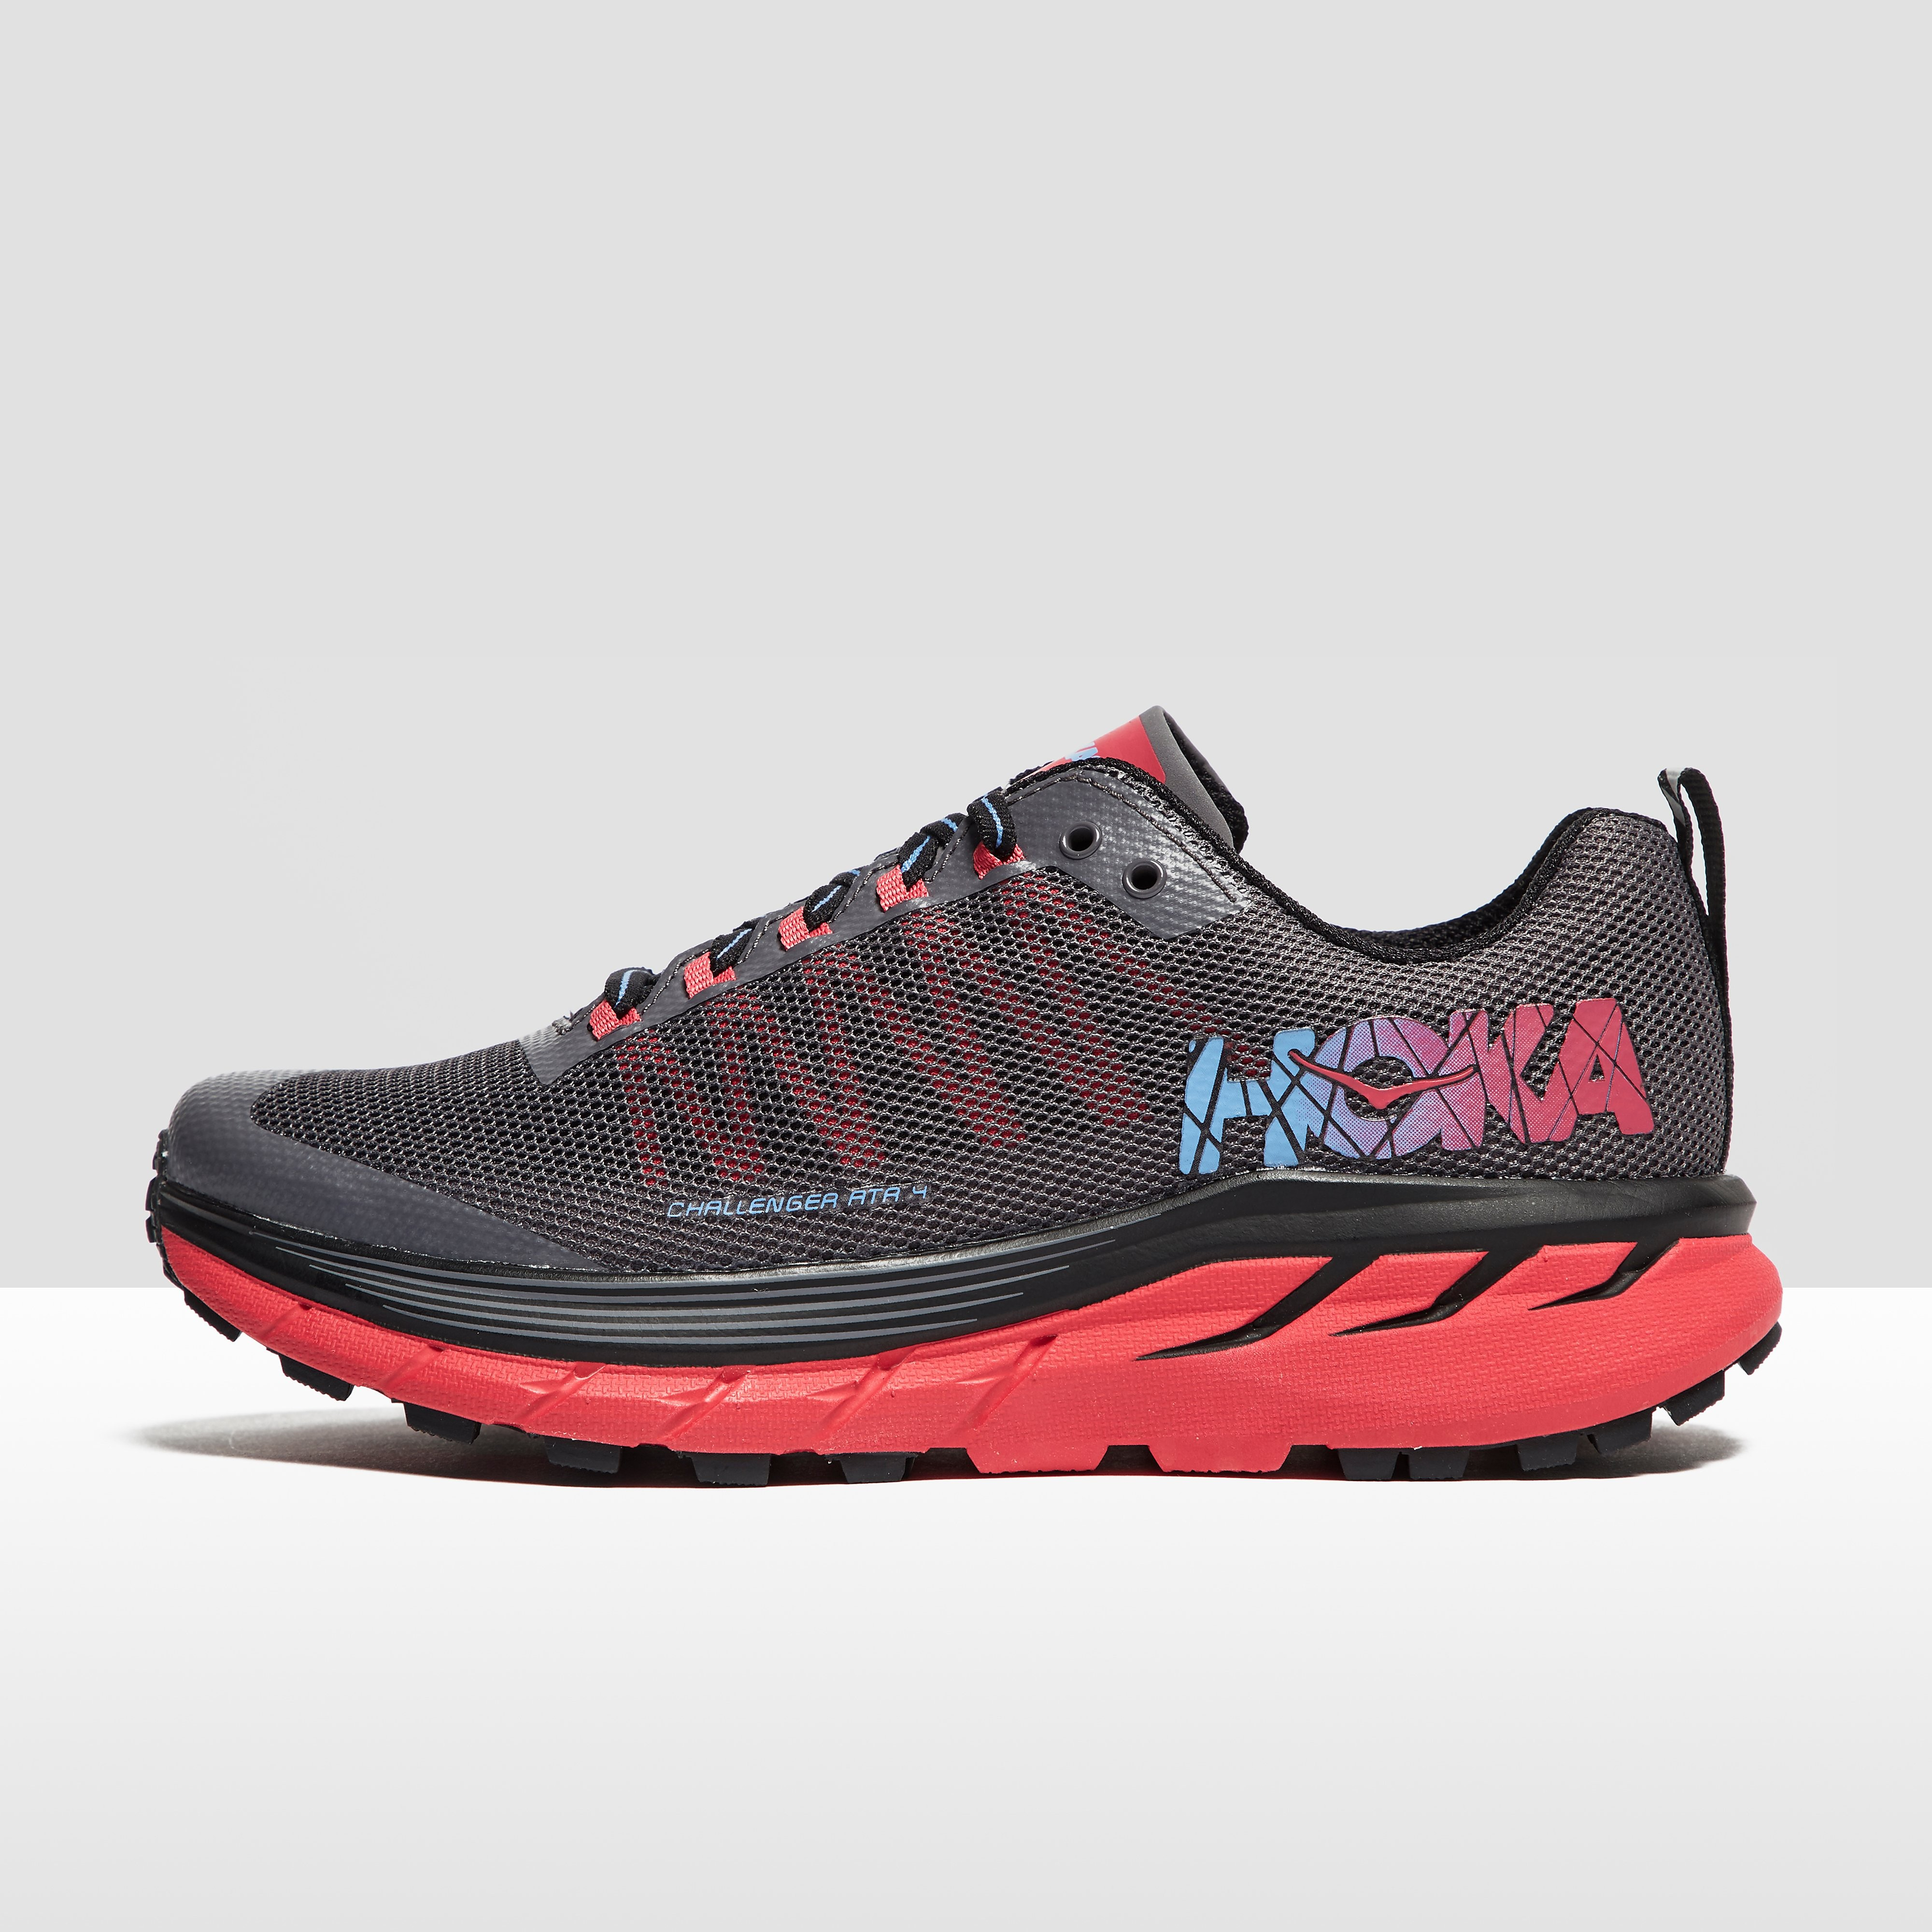 Hoka One One CHALLENGER ATR 4 WOMEN'S TRAIL RUNNING SHOES